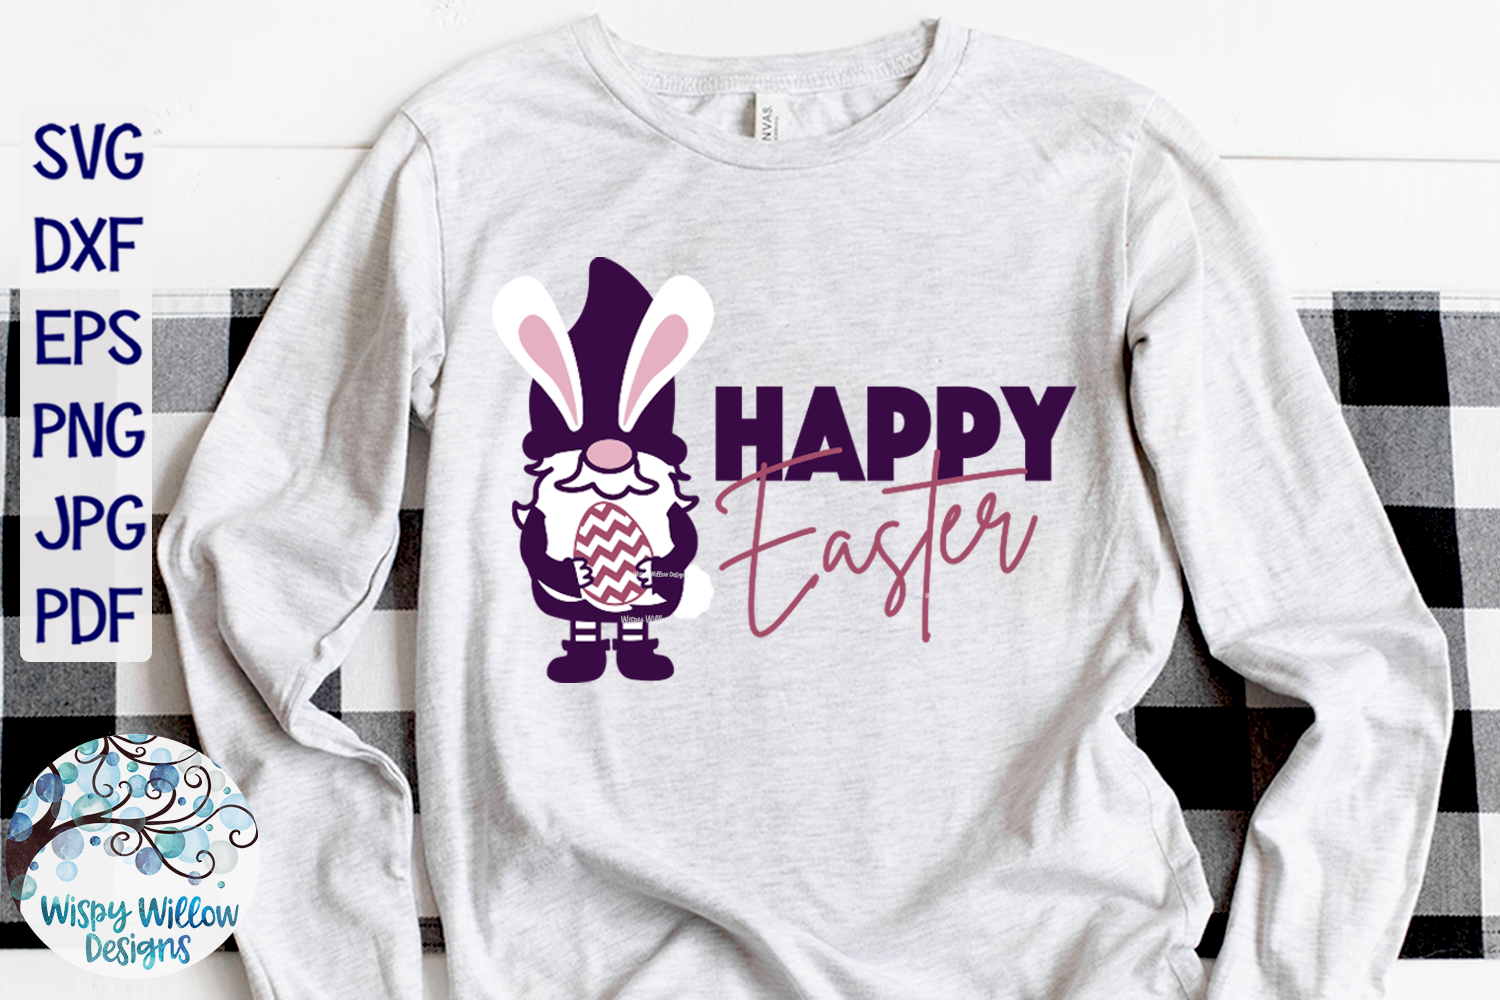 Happy Easter Gnome SVG | Easter Bunny Gnome SVG Cut File example image 1